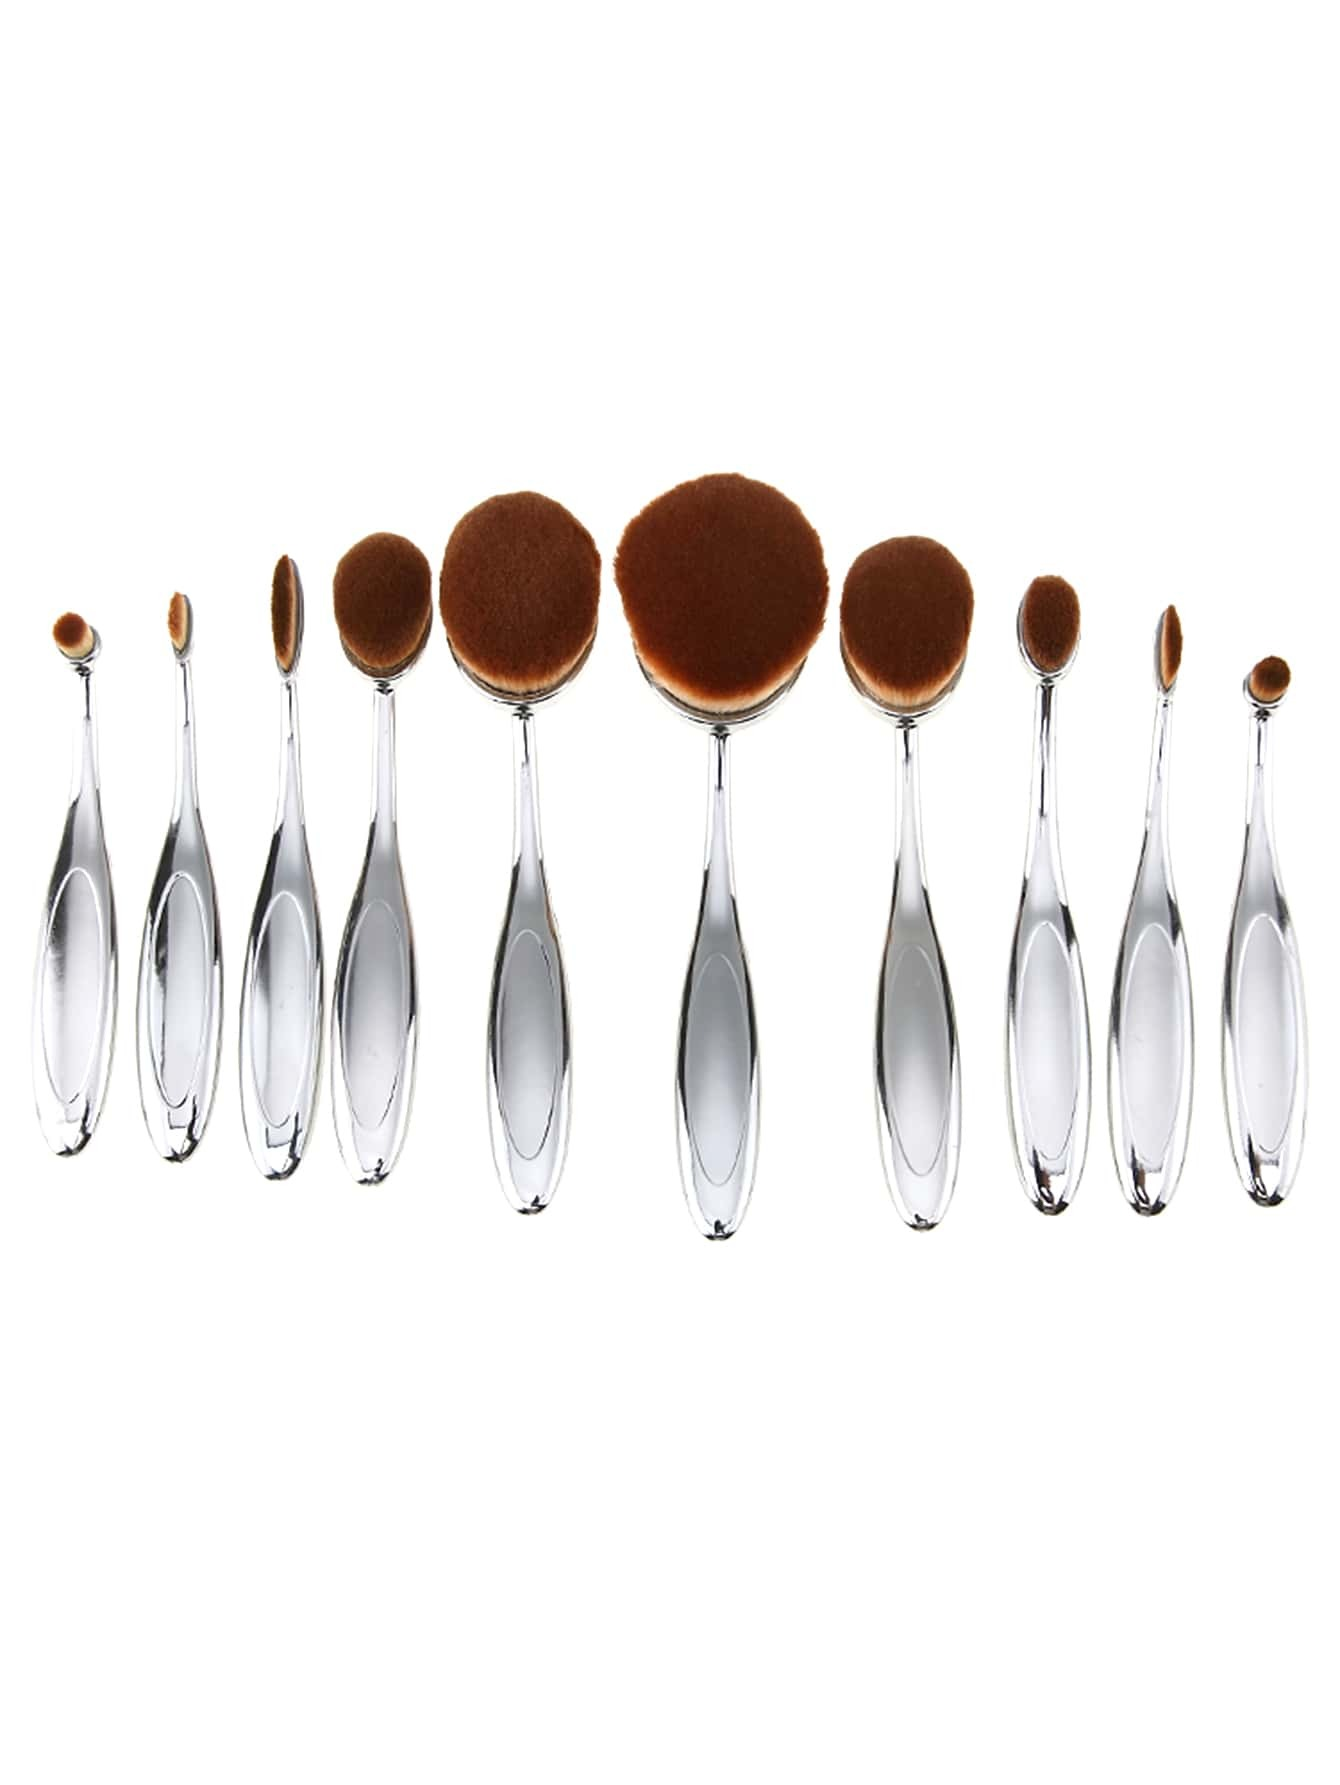 Image of 10PCS Silver Professional Toothbrush Makeup Brush Set